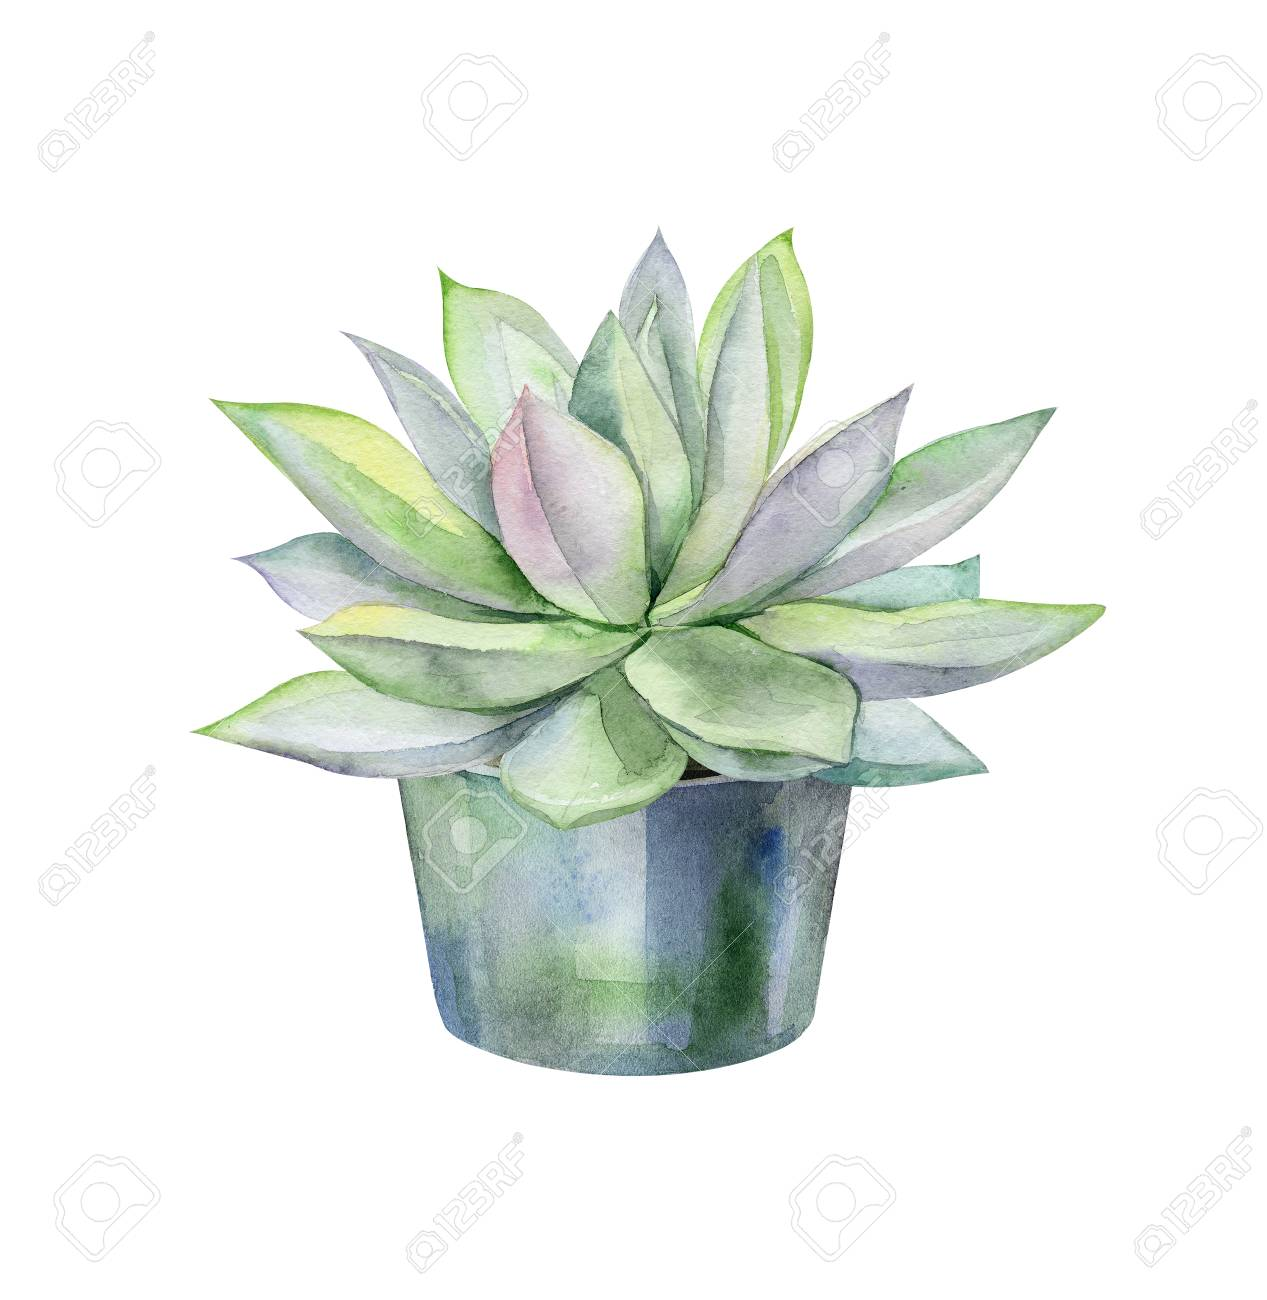 Watercolor Succulents Green Bouquet Echeveria Illustration Stock Photo Picture And Royalty Free Image Image 107132044